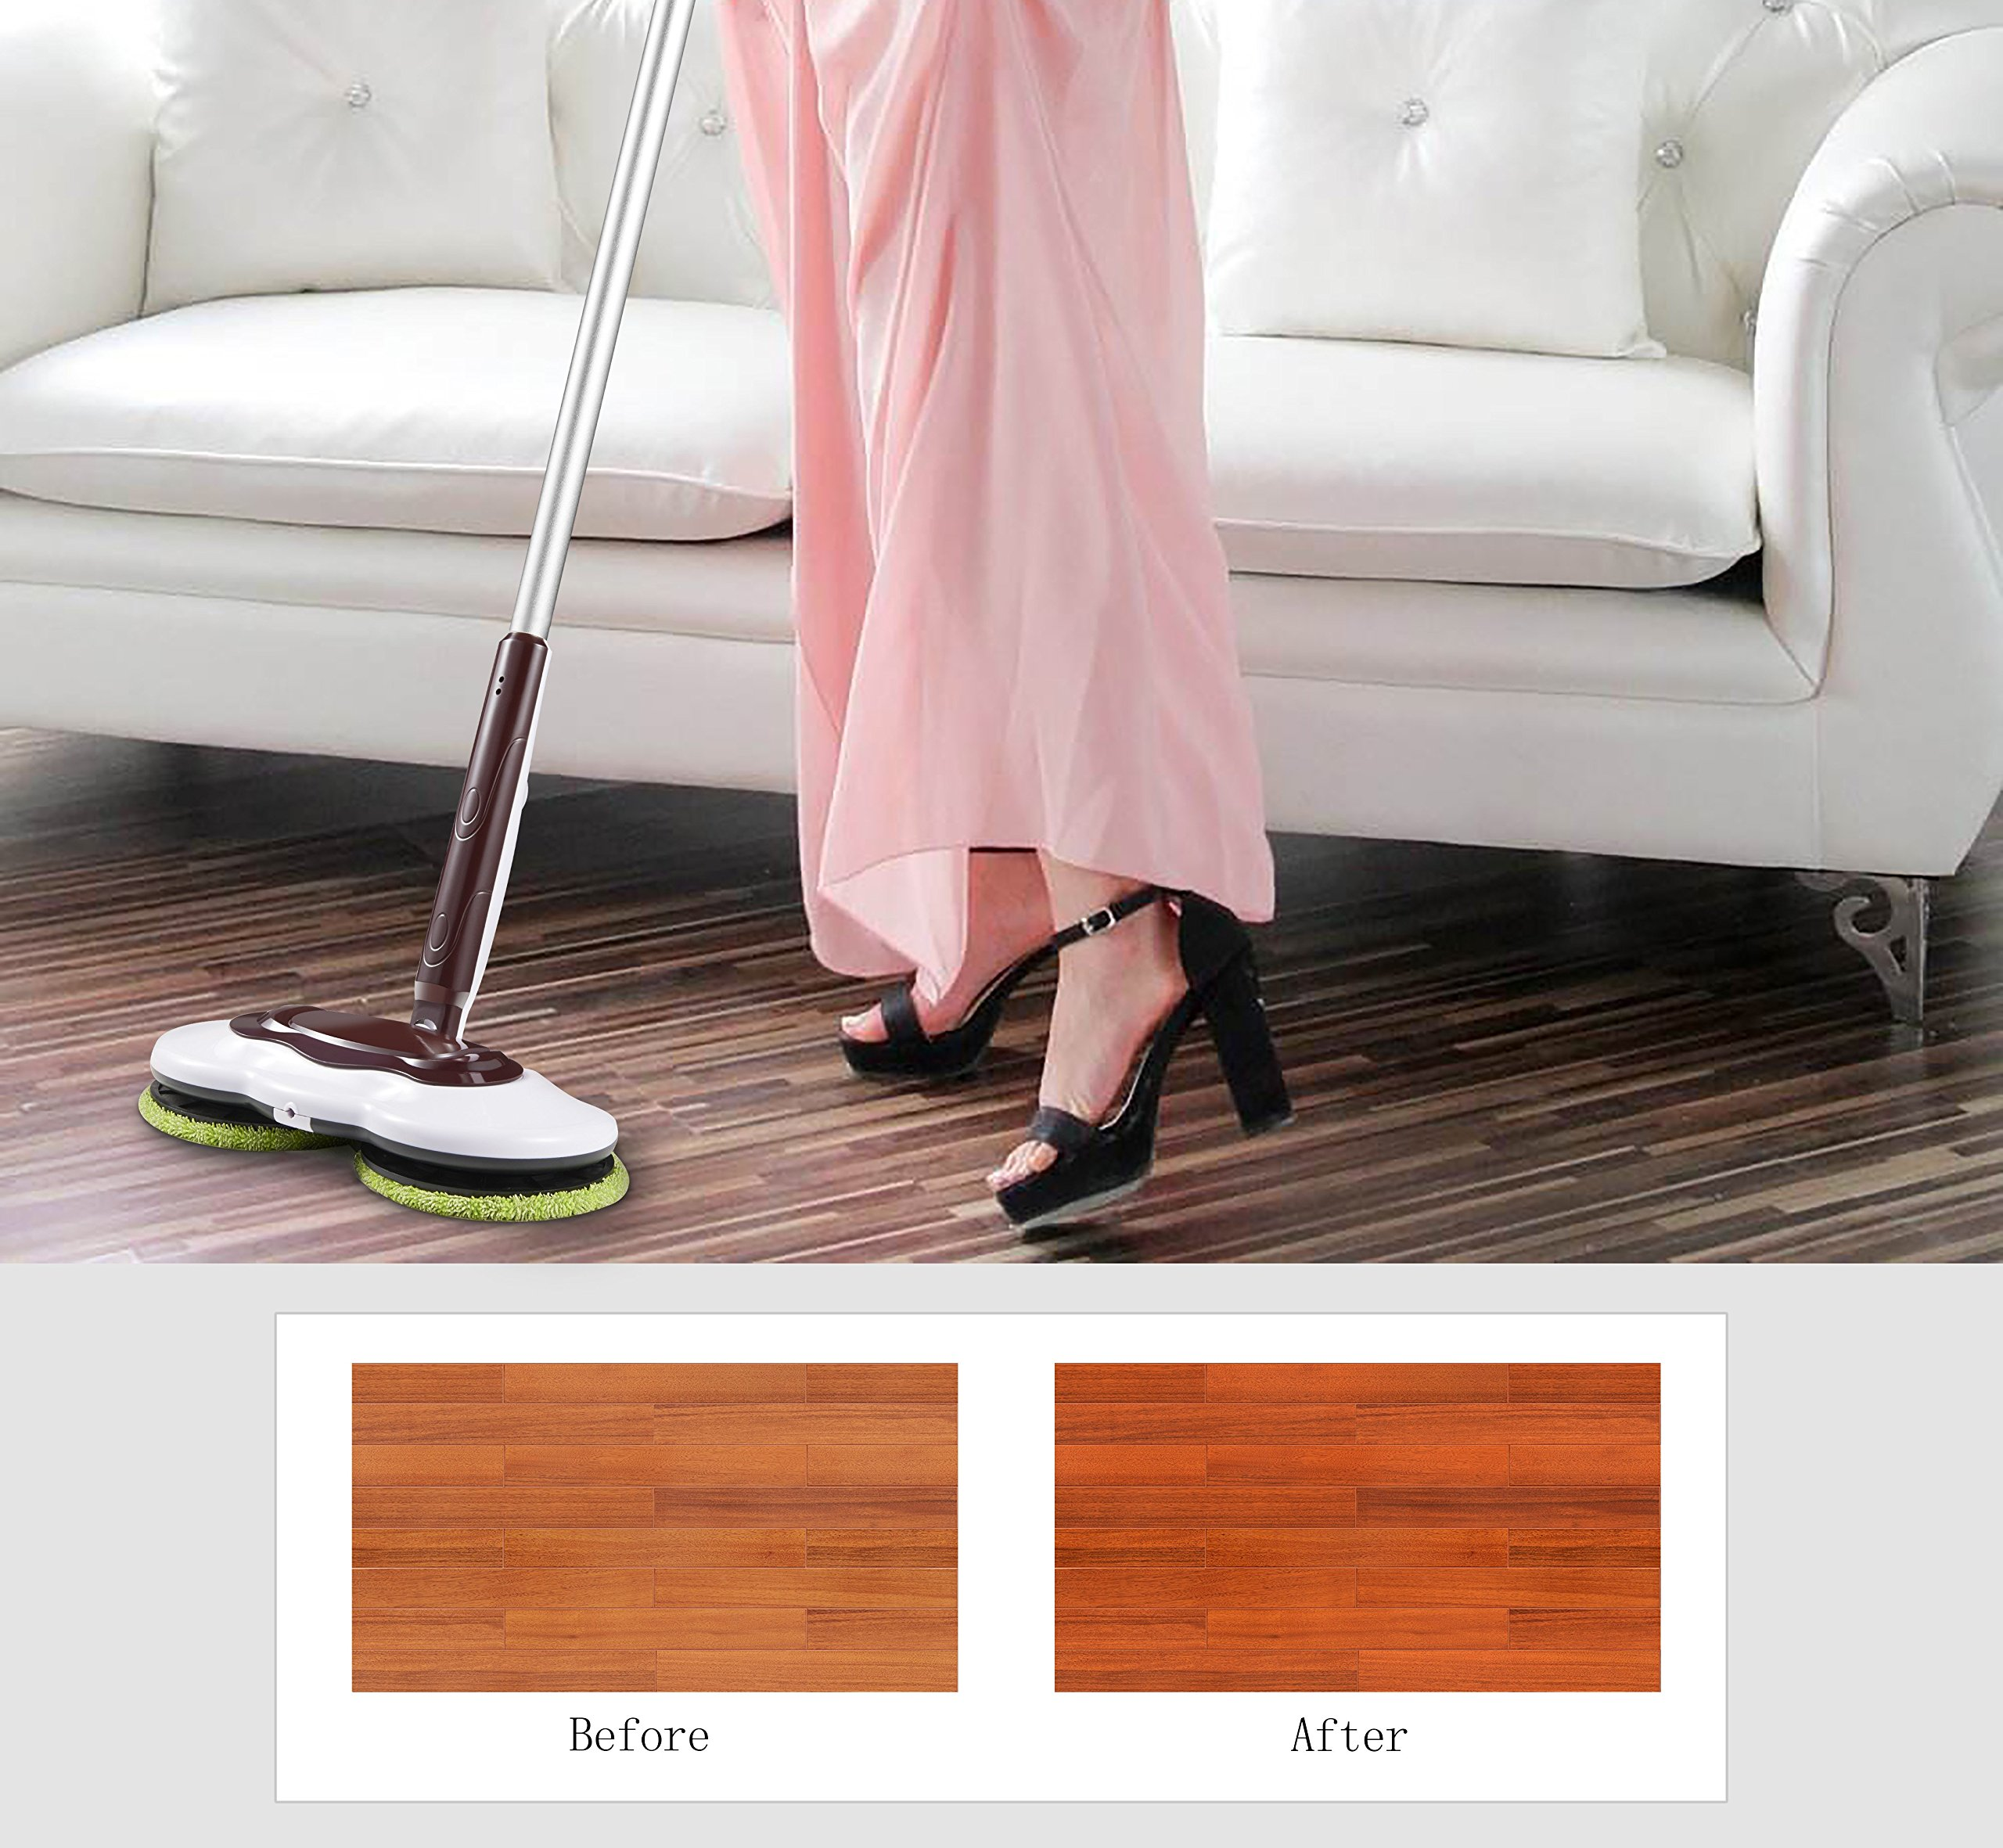 Armati Hardwood Floor Mop - 360°Cordless Tub and Tile Scrubber with Batteries - Cleaning System for Polishing, Mopping, Sweeping - Orange by Armati (Image #4)